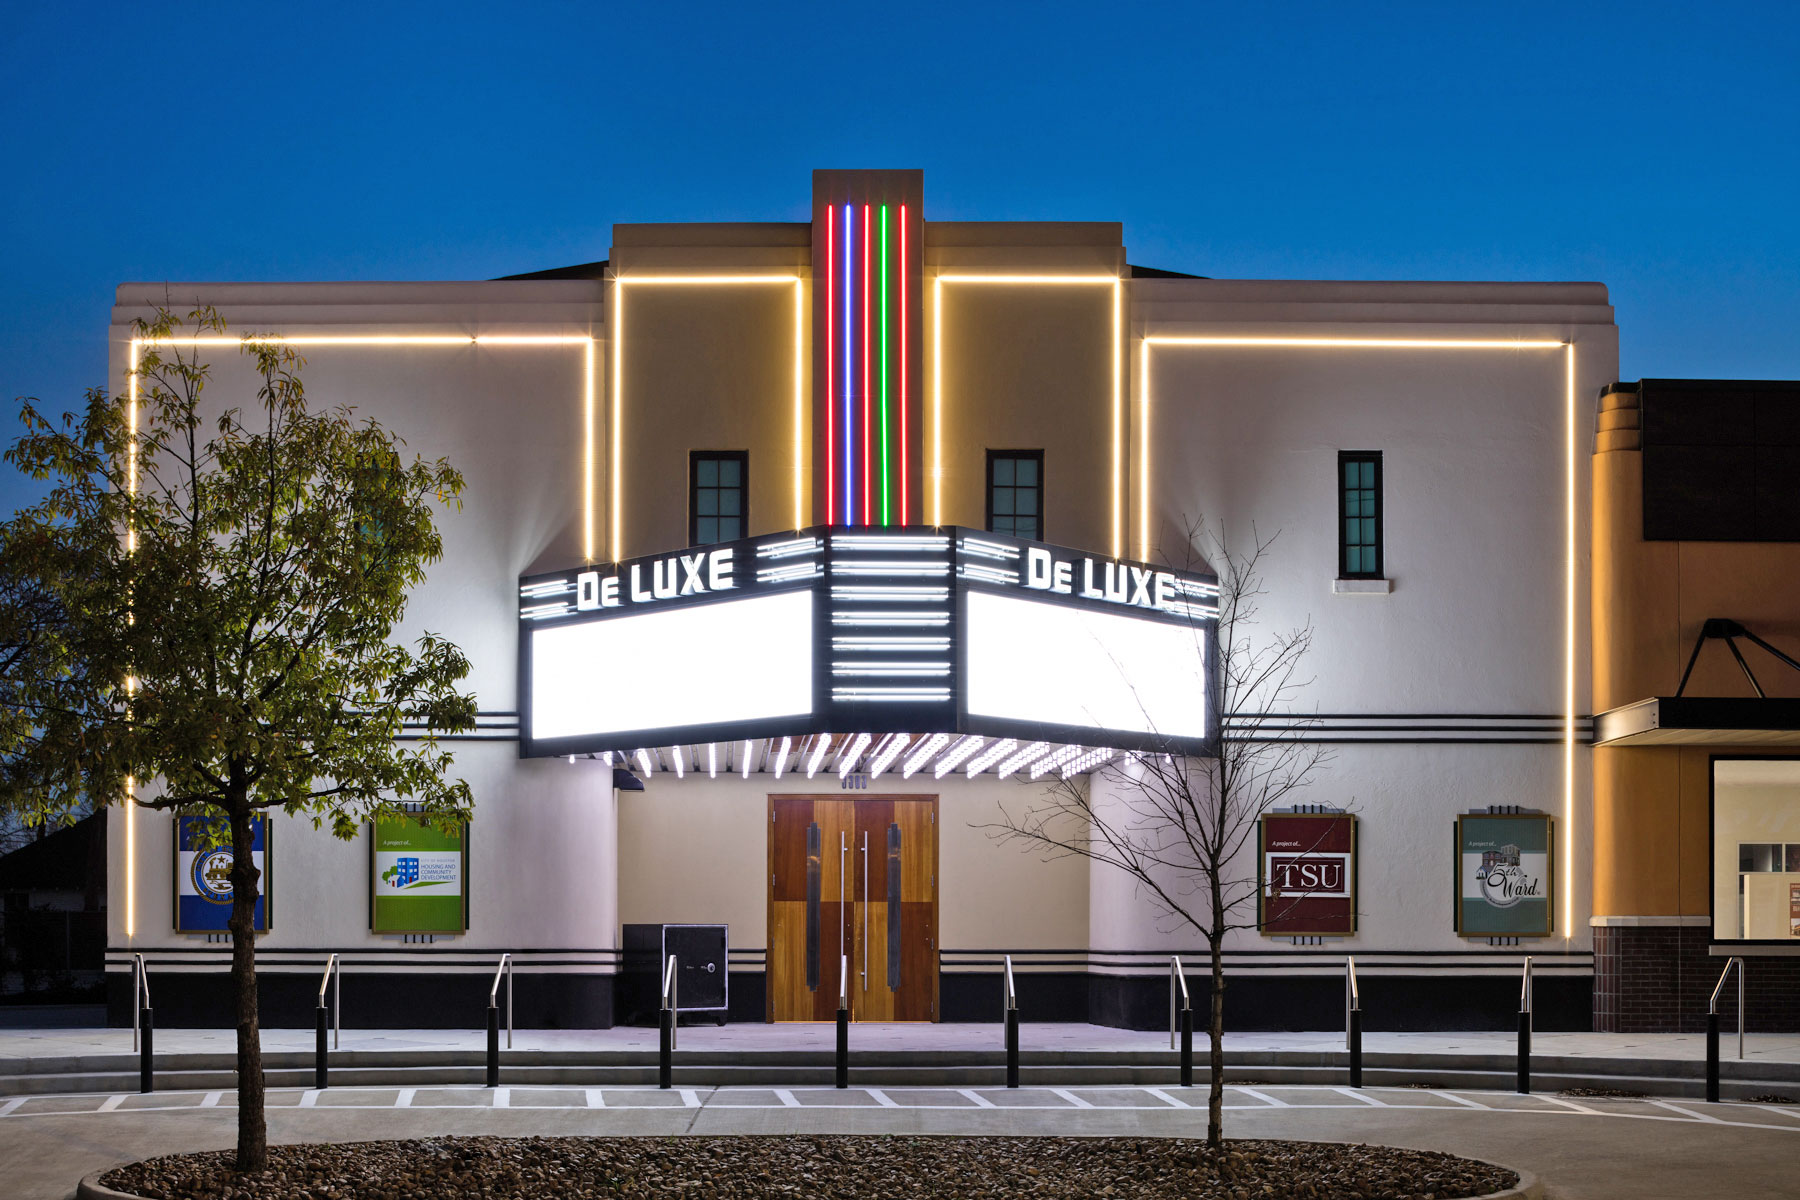 City of Houston and Fifth Ward Community Redevelopment Corp. for the rehabilitation of the DeLuxe Theater (1941) in the Fifth Ward /  photo by Zvonkovic Photography